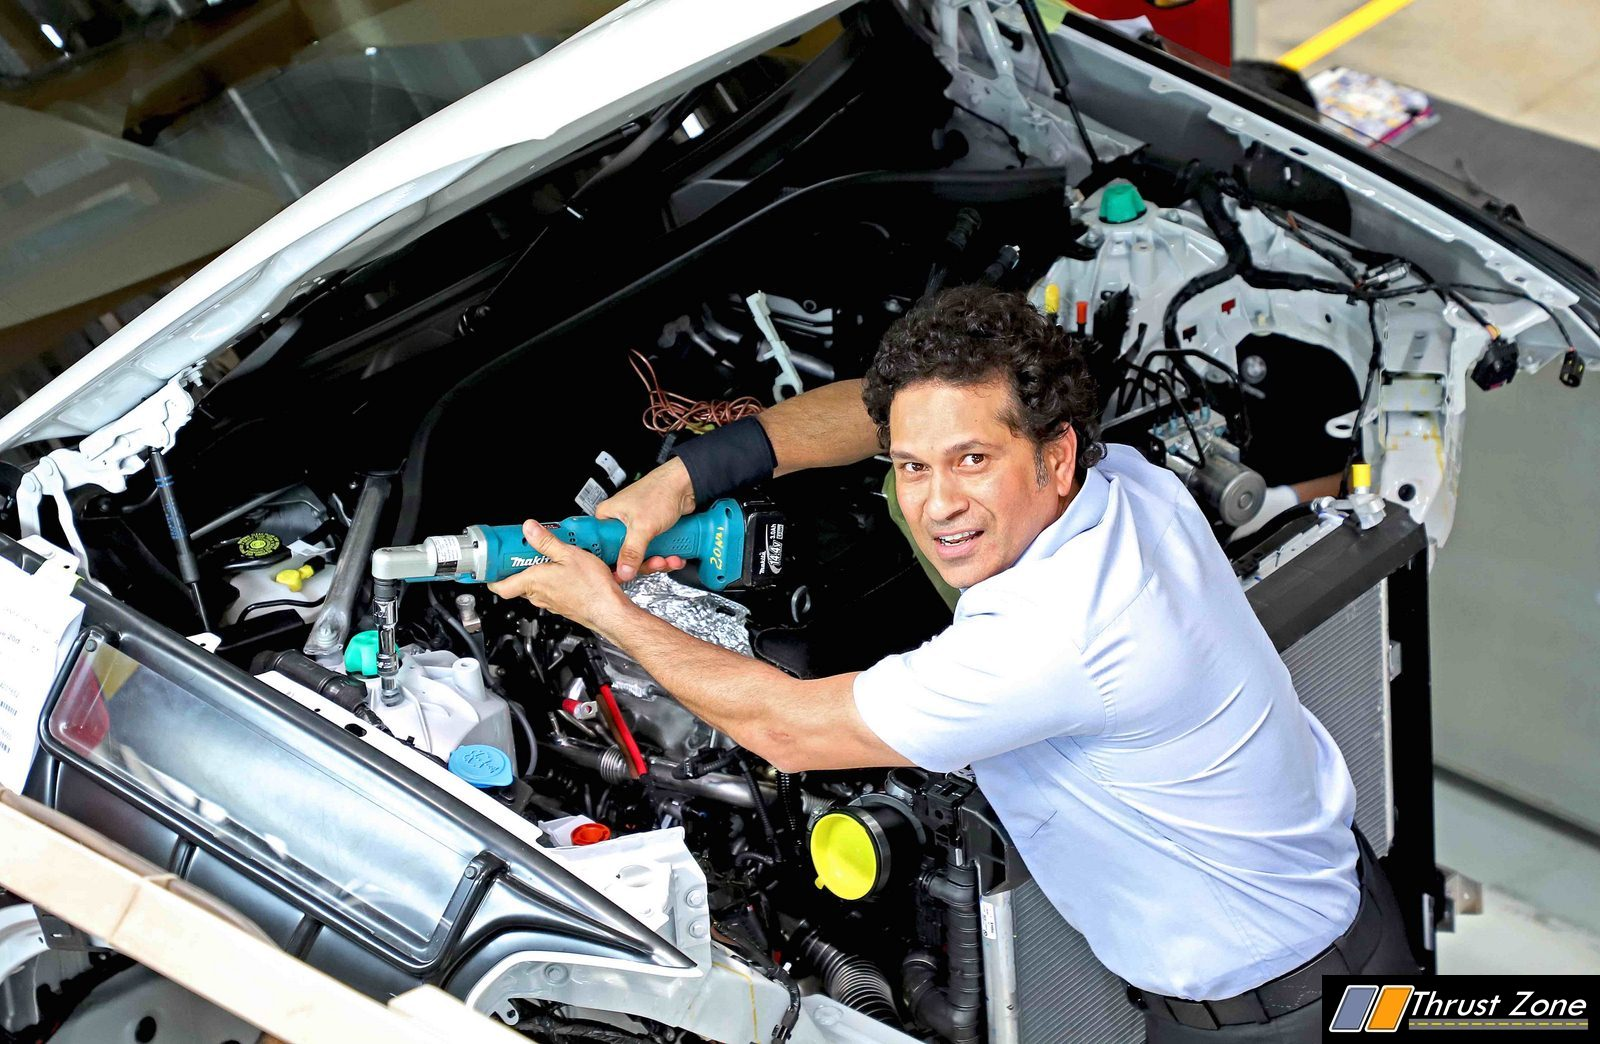 Bmw Skill Next Initiative Is The Most Helpful Csr To Every Take Place Hd Photos And Report